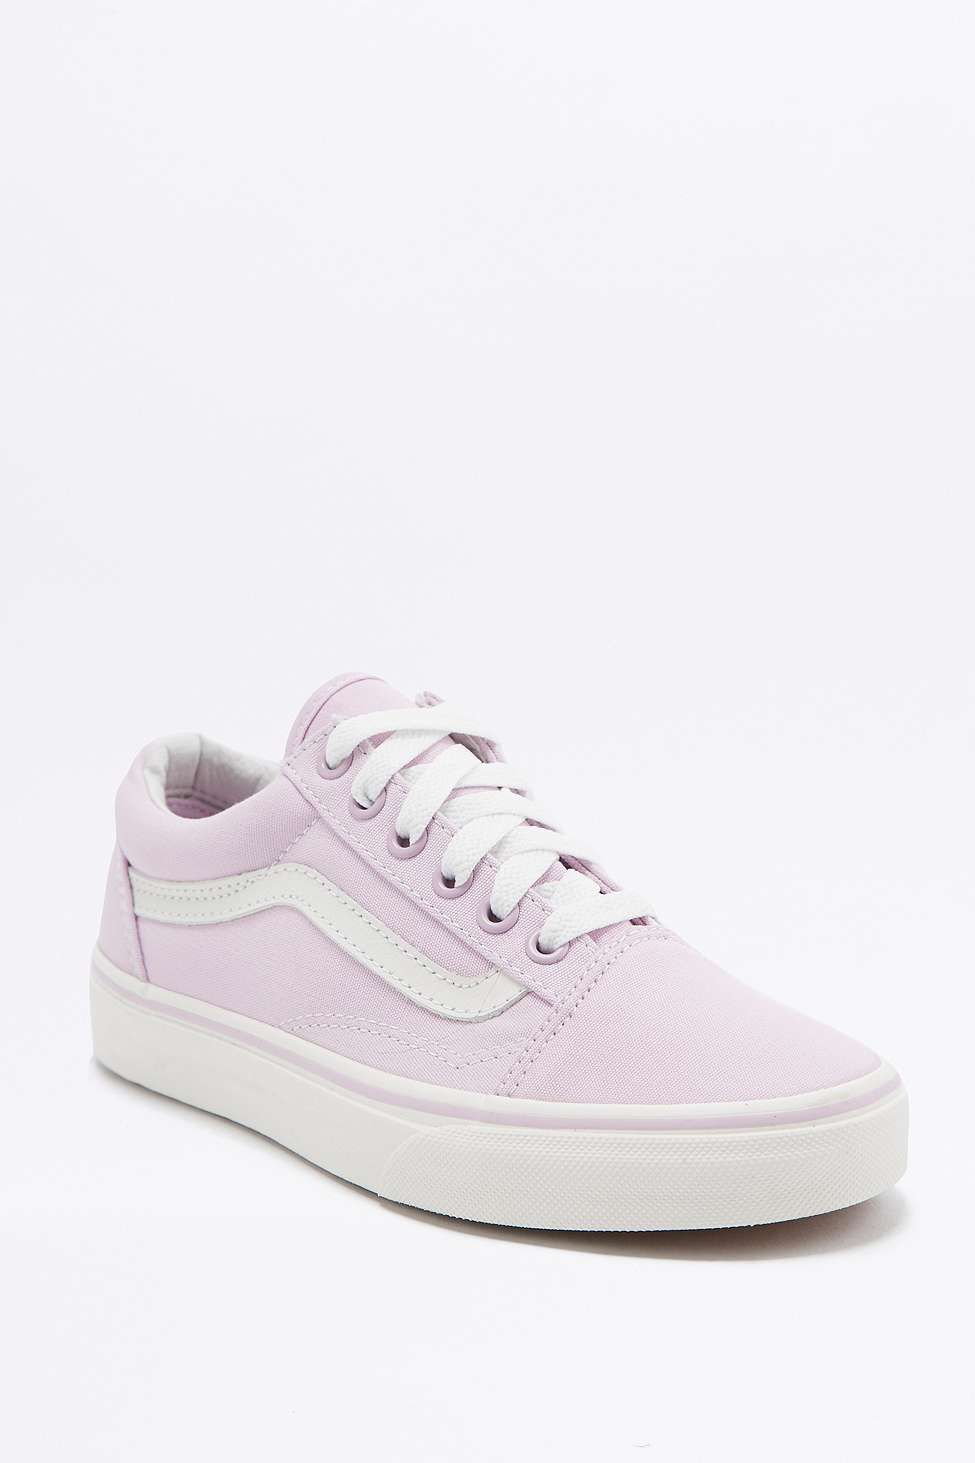 Vans Old Skool Baby Pink Trainers